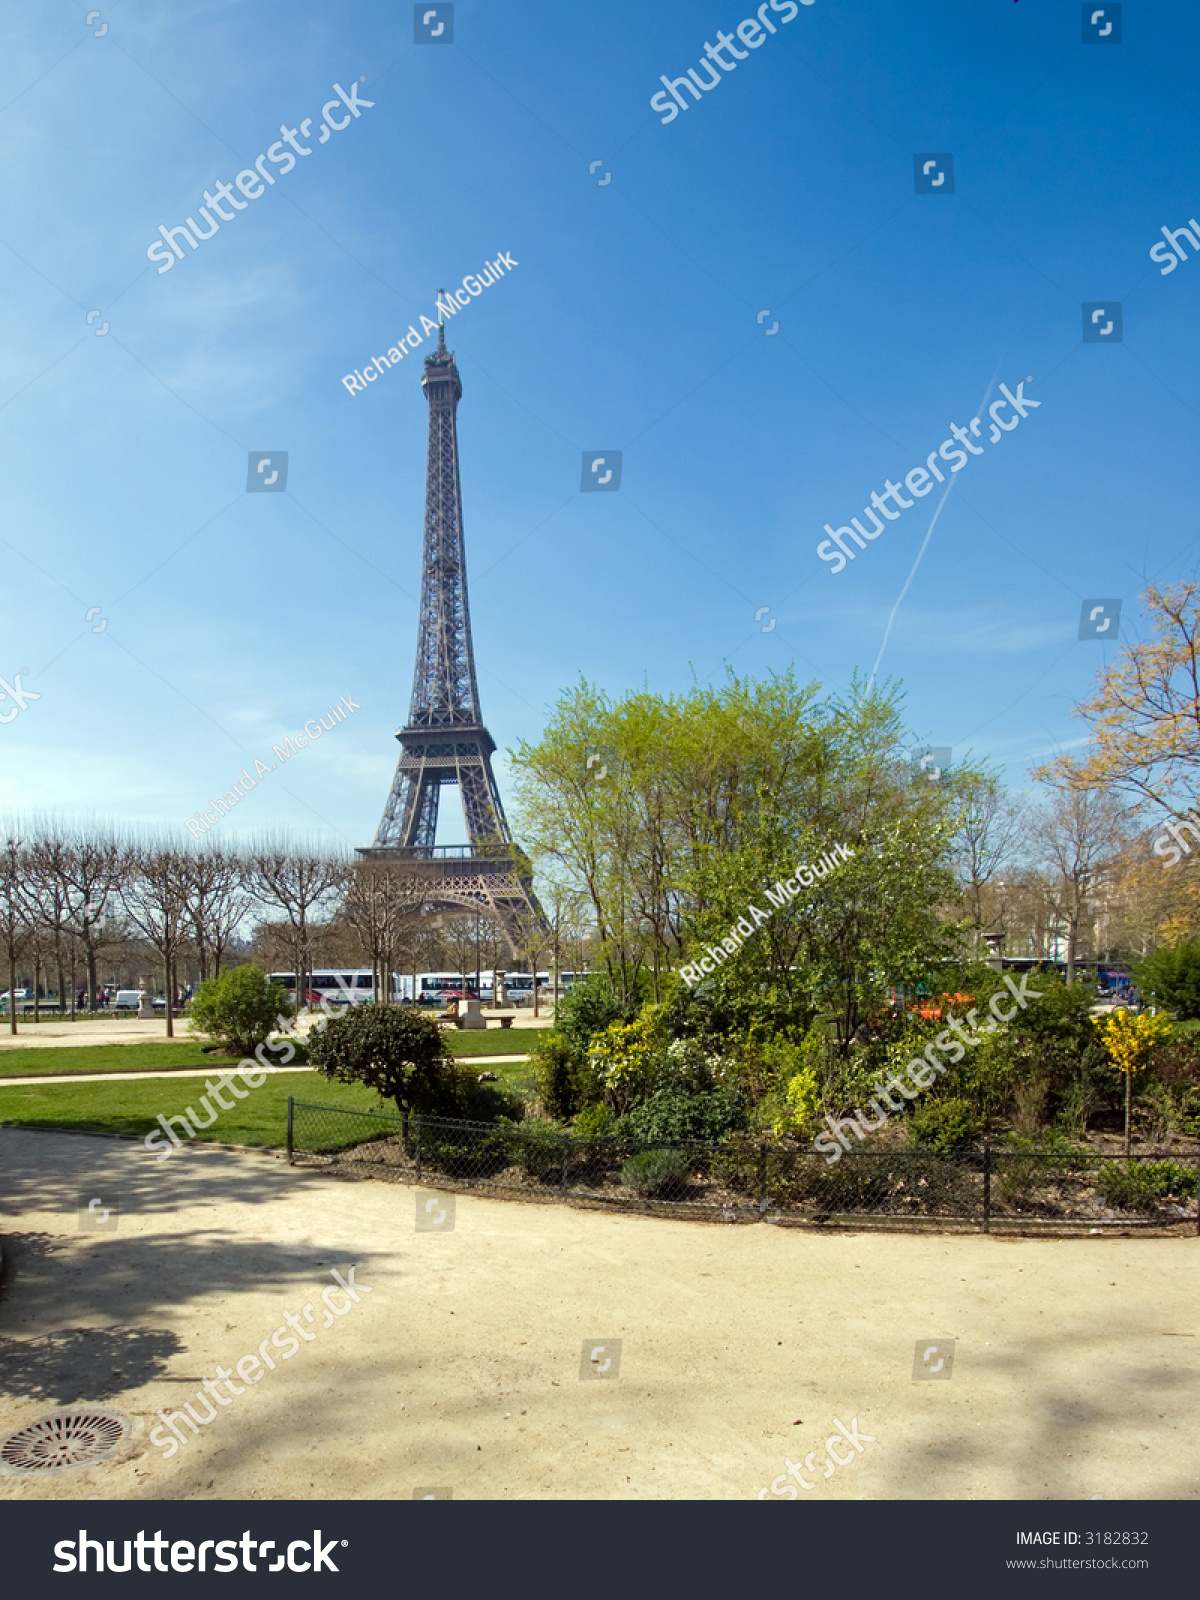 Color Dslr Image Landmark Eiffel Tower Stock Photo Edit Now